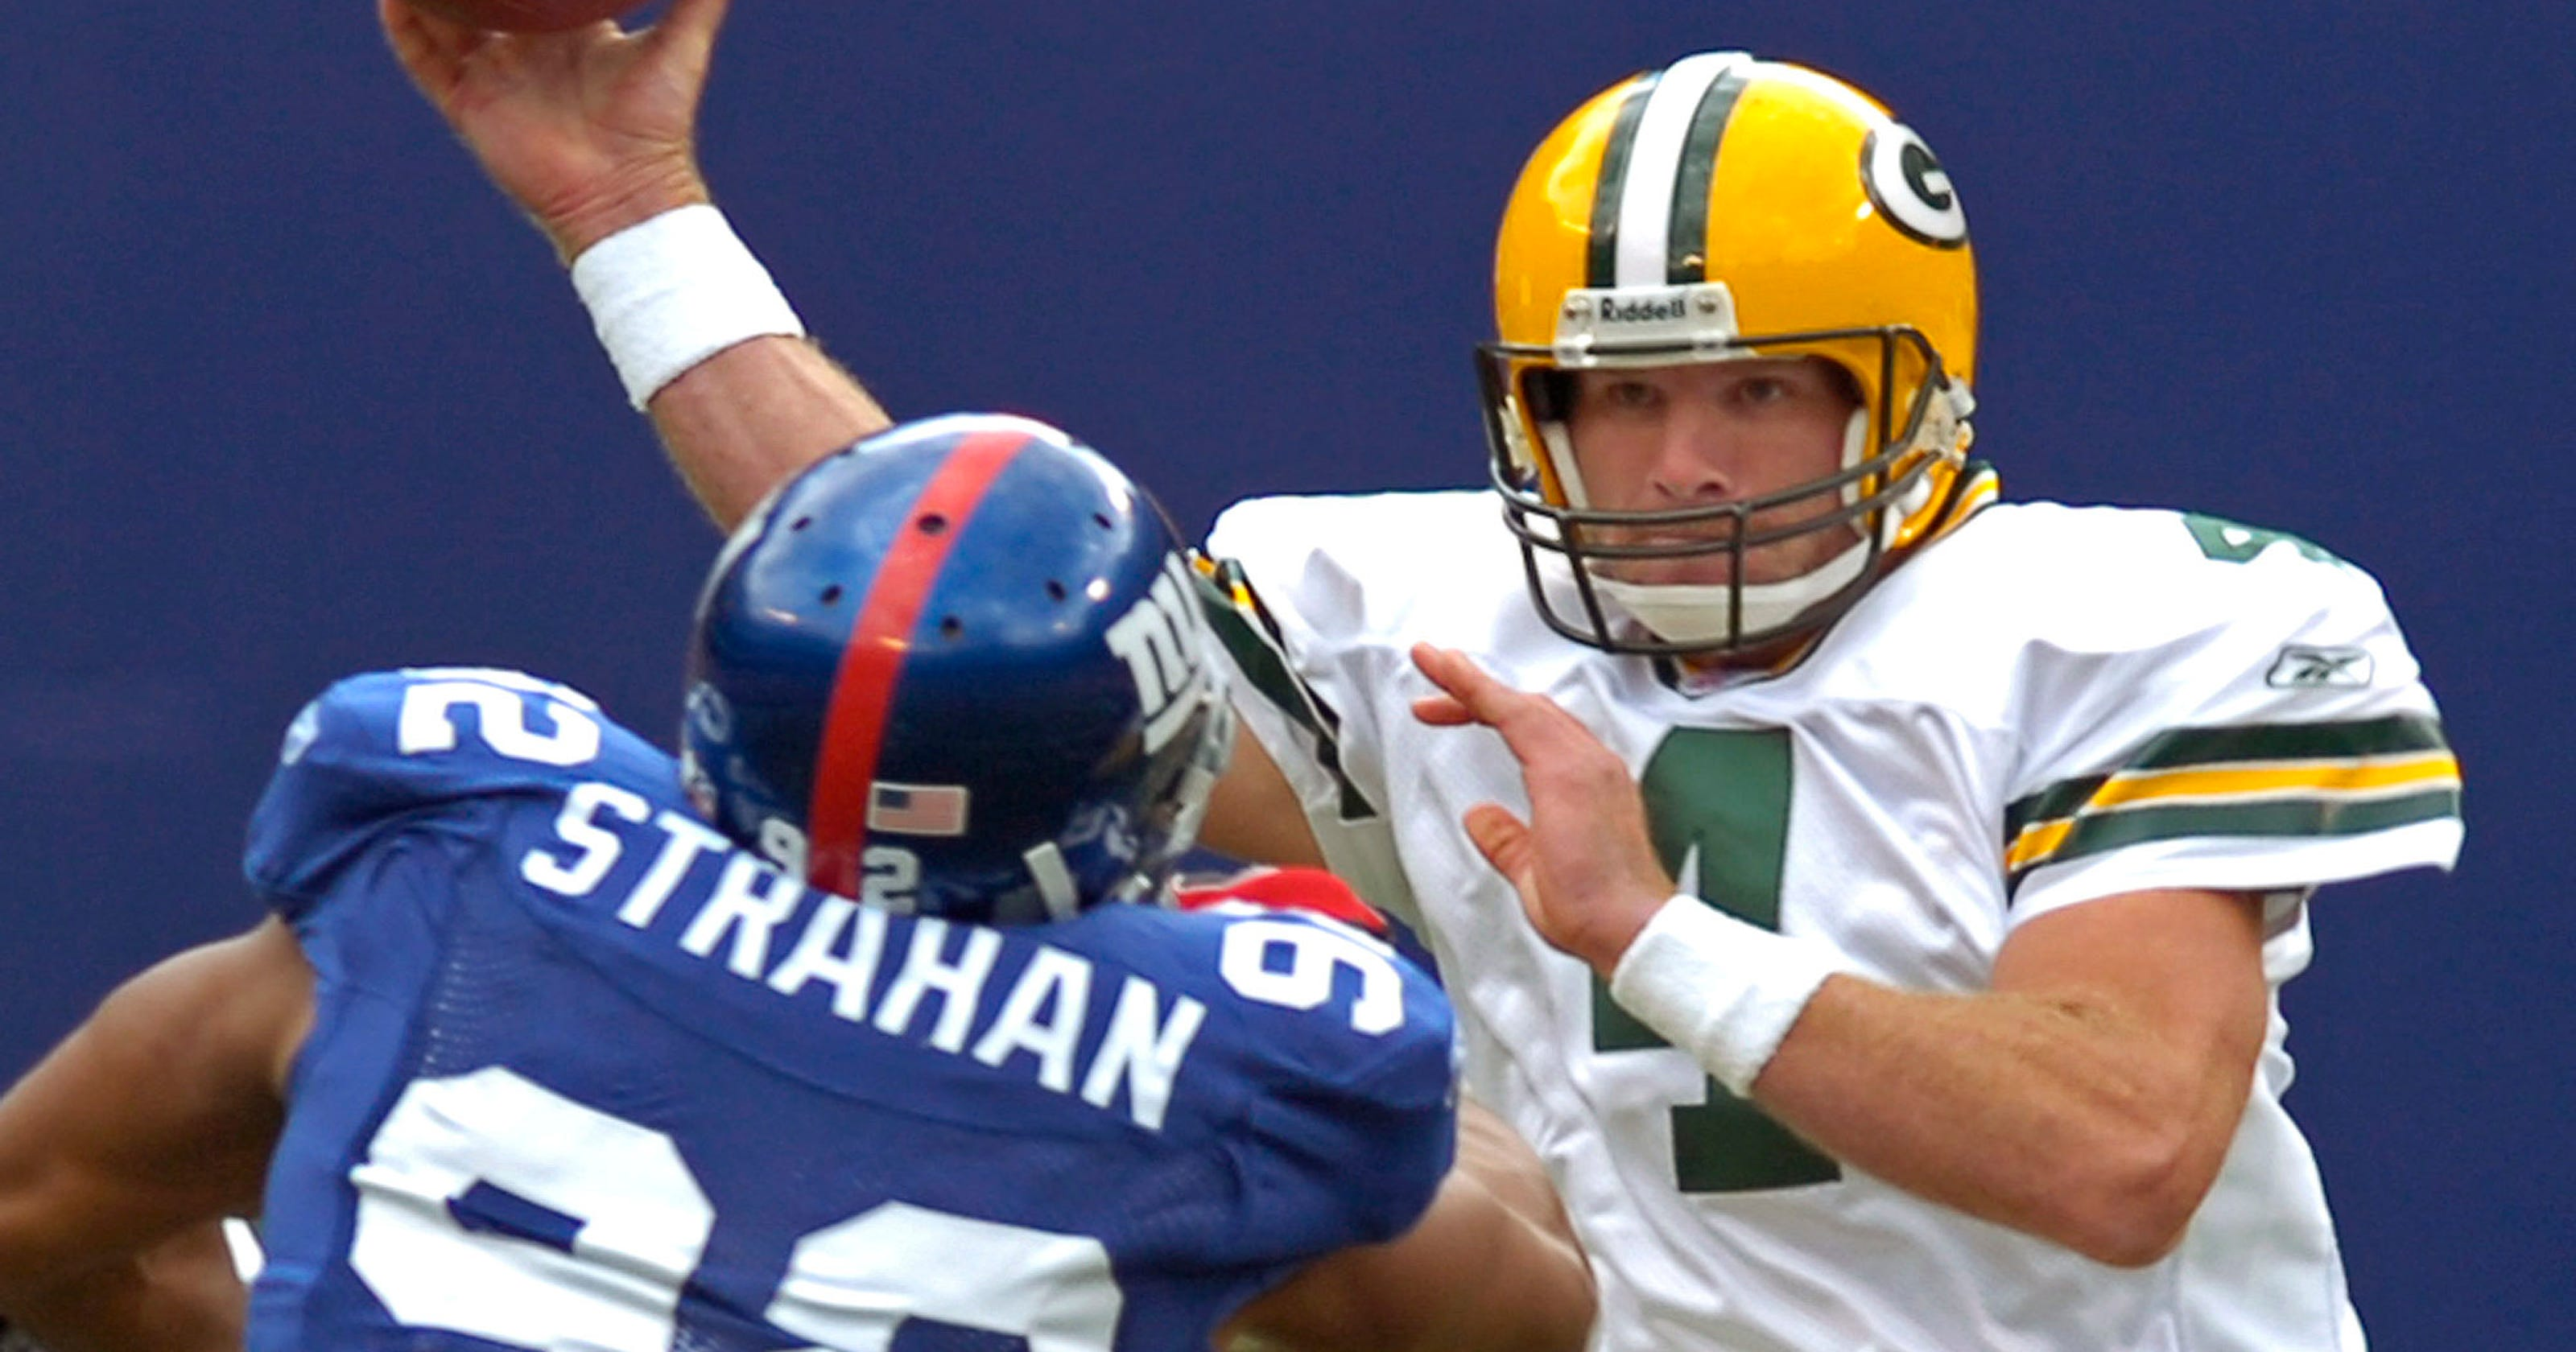 1bbb25814e8 Packers' Rodgers looking forward to returns of Favre, Starr